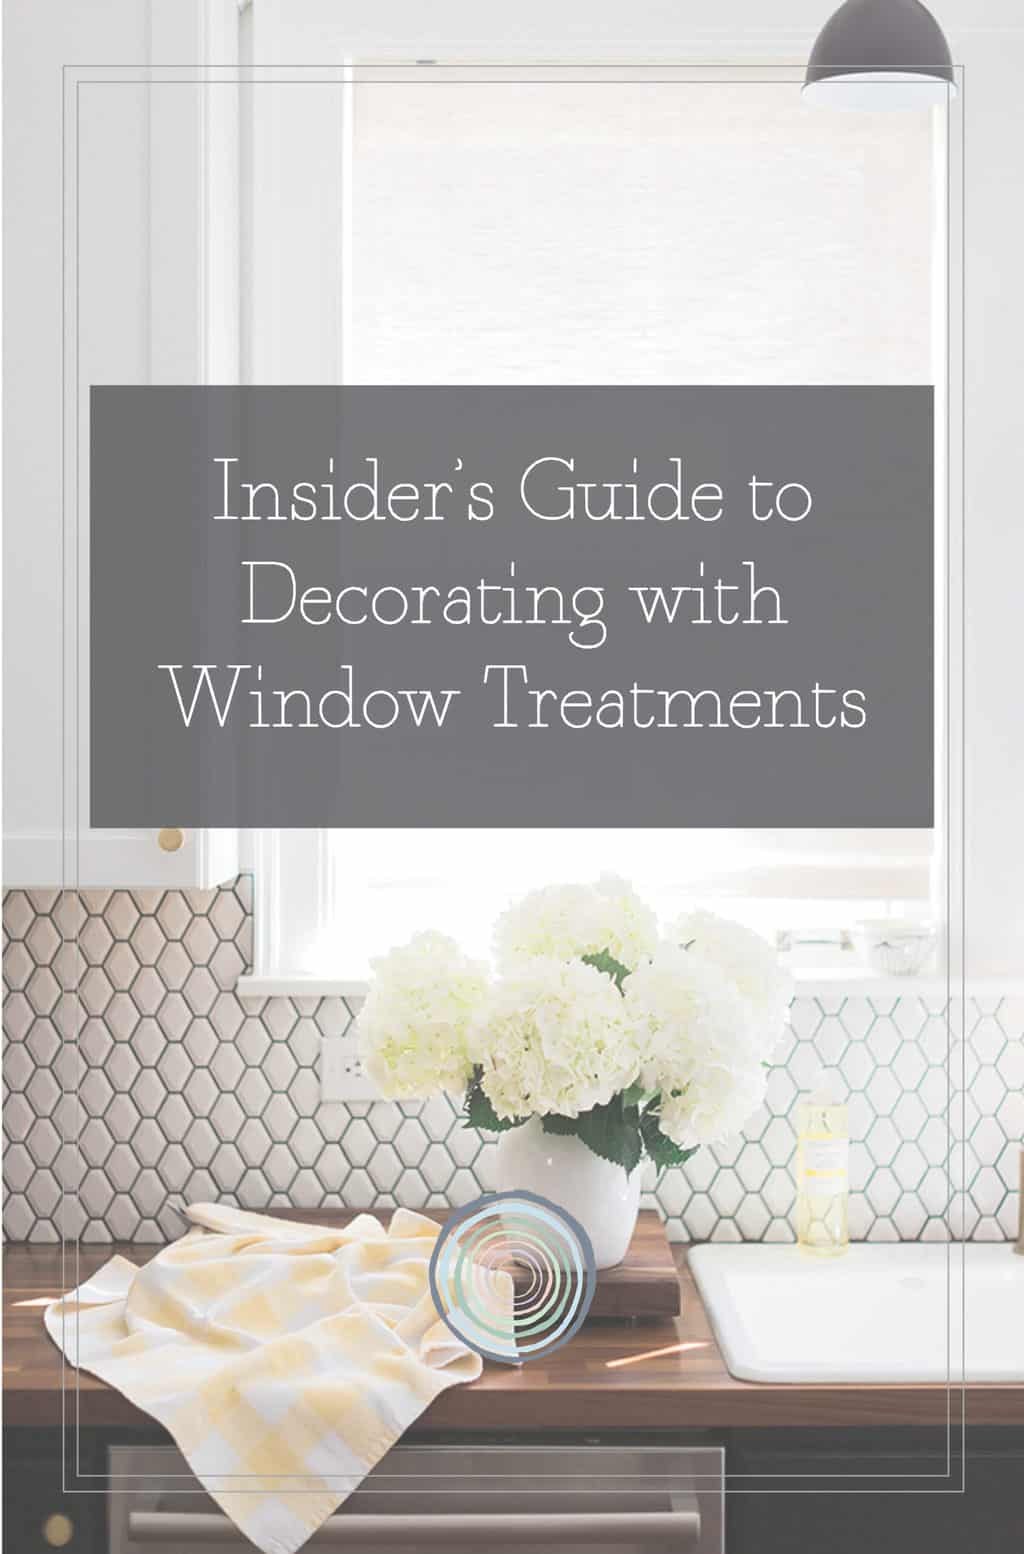 Insider's Guide to Decorating with Window Treatments PDF